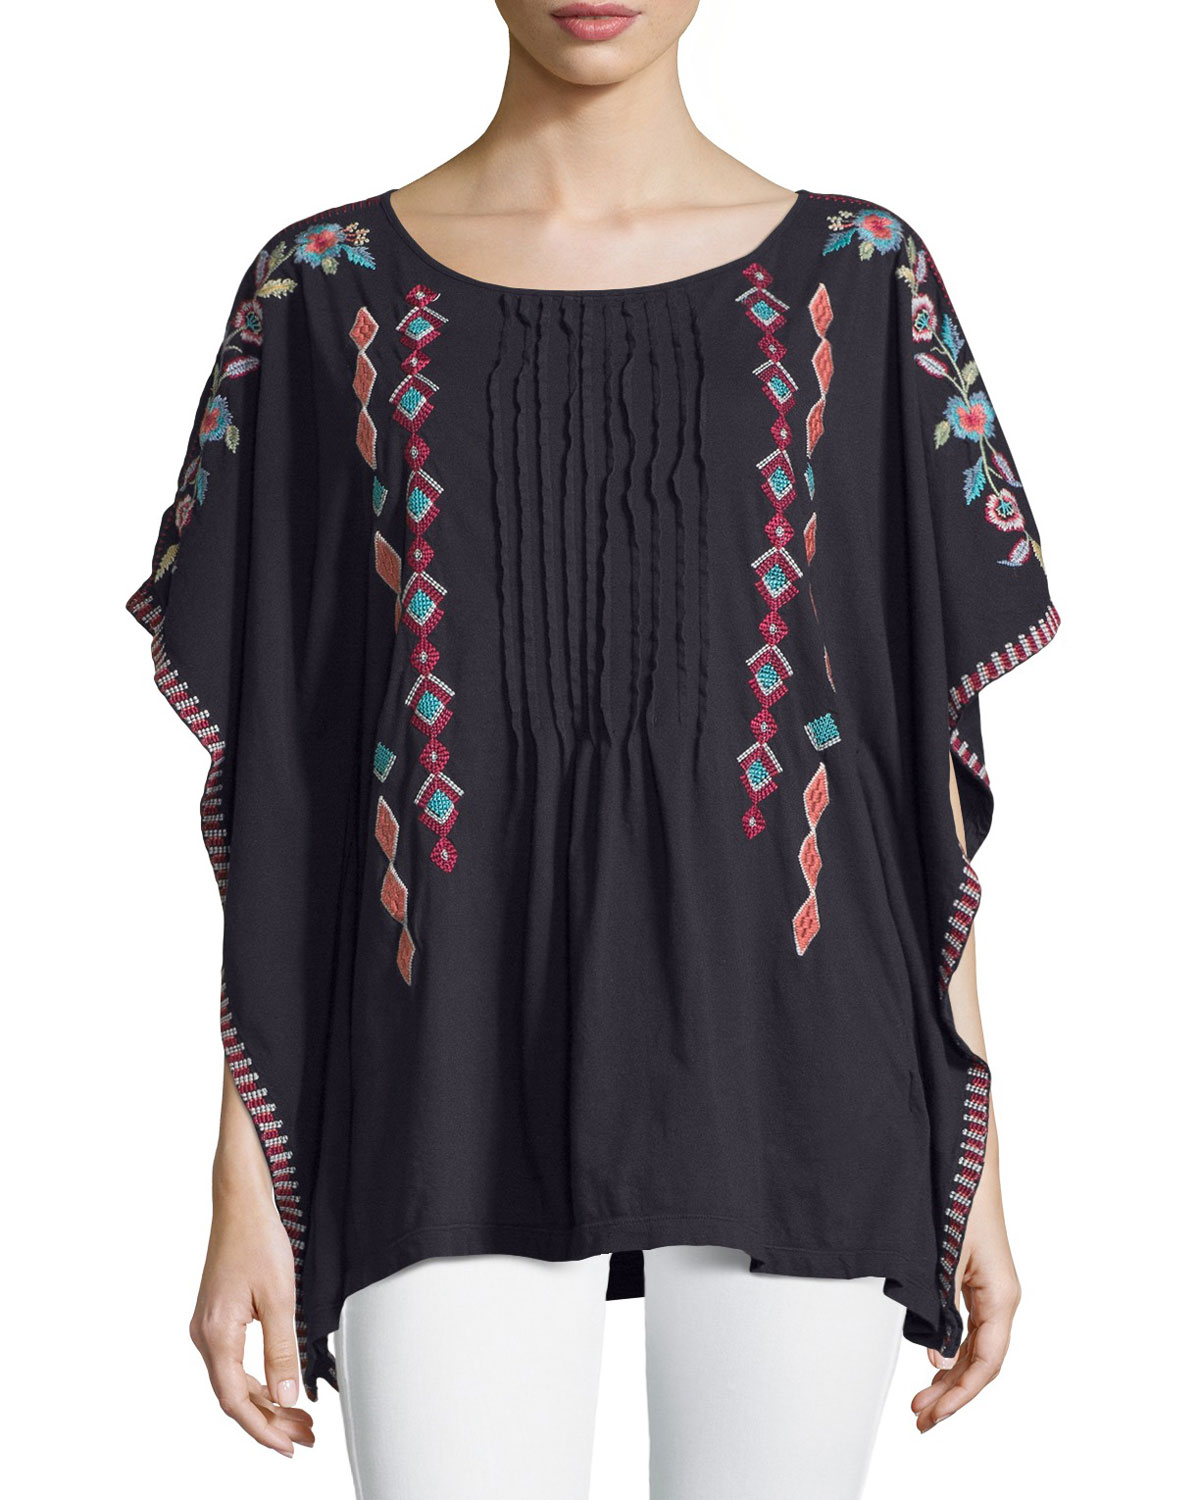 Lyst - Johnny Was Embroidered Pintuck Poncho Top in Black